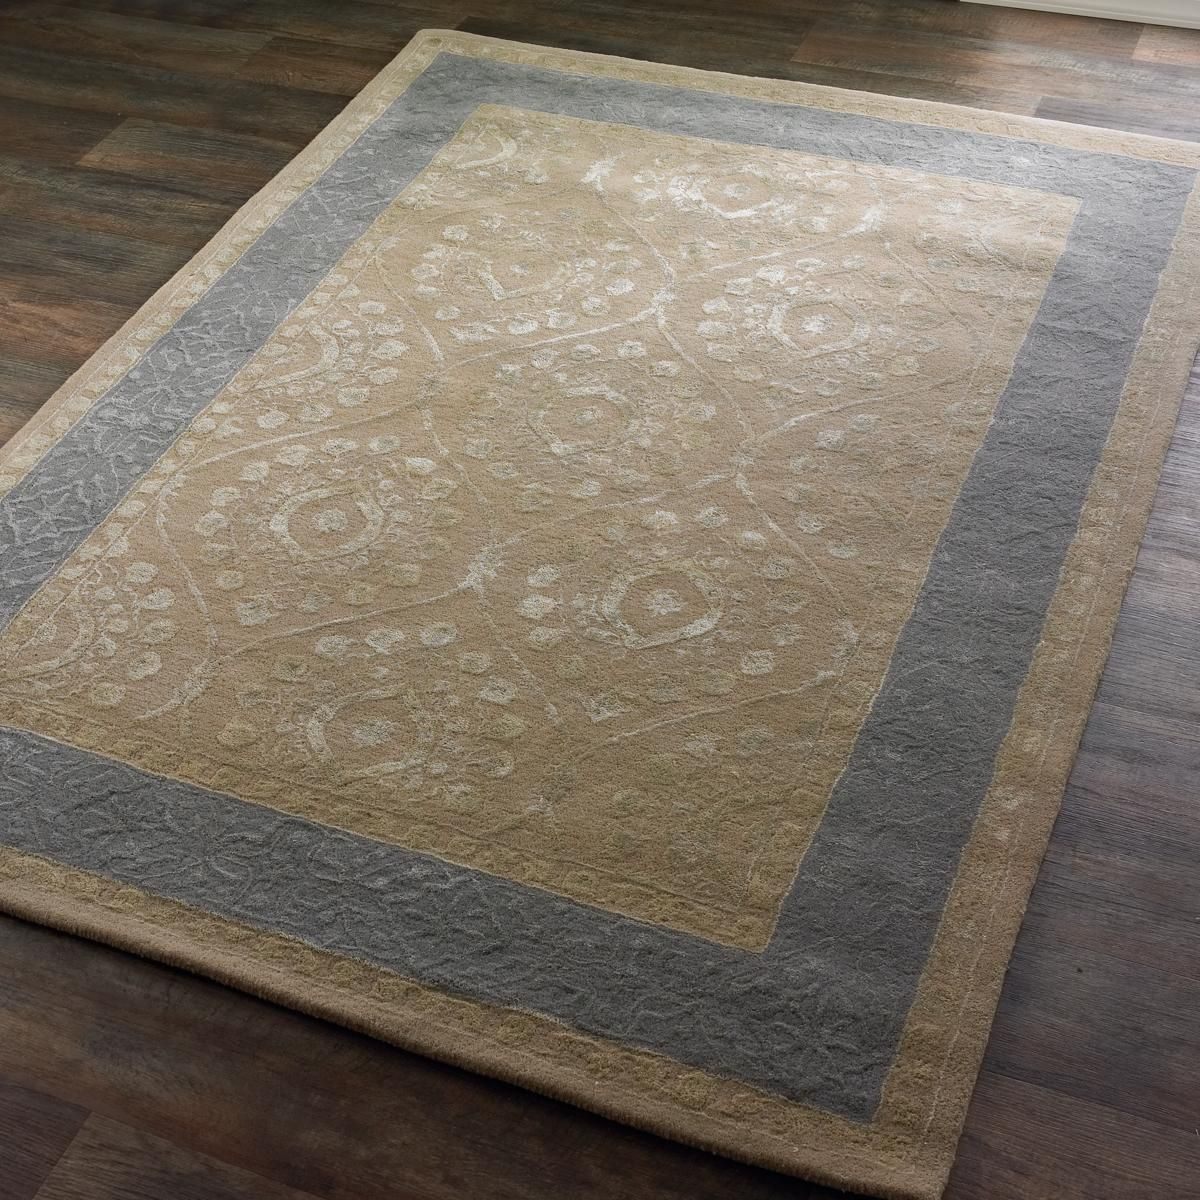 Gray Taupe And White Bedroom Curatins: Taupe And Gray Morrocan Trellis Border Rug Subtle